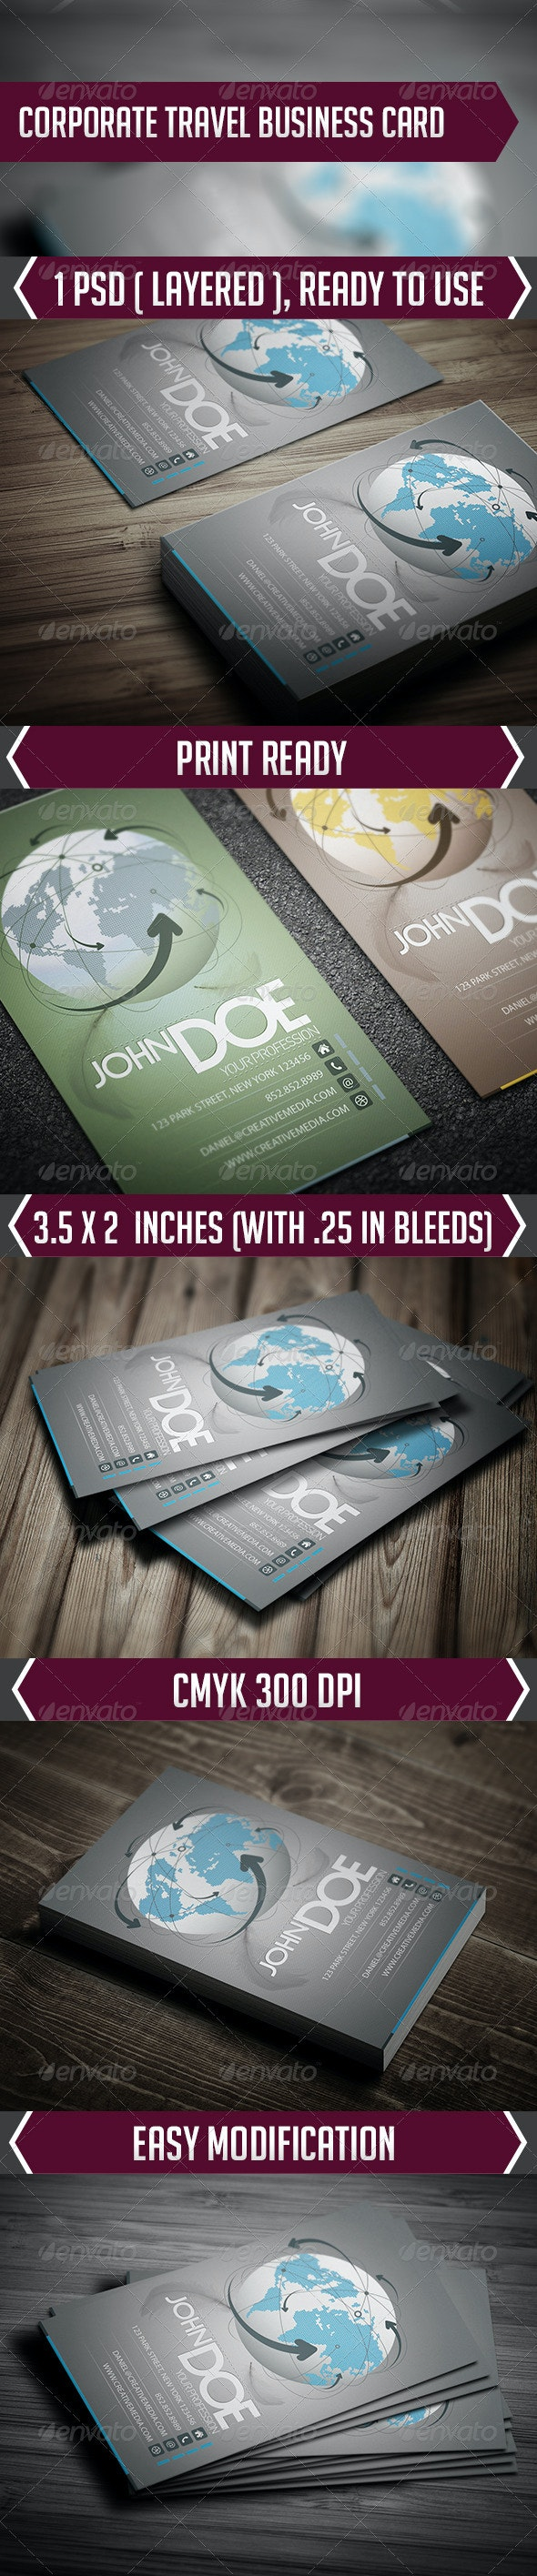 Corporate Travel Business Card - Creative Business Cards